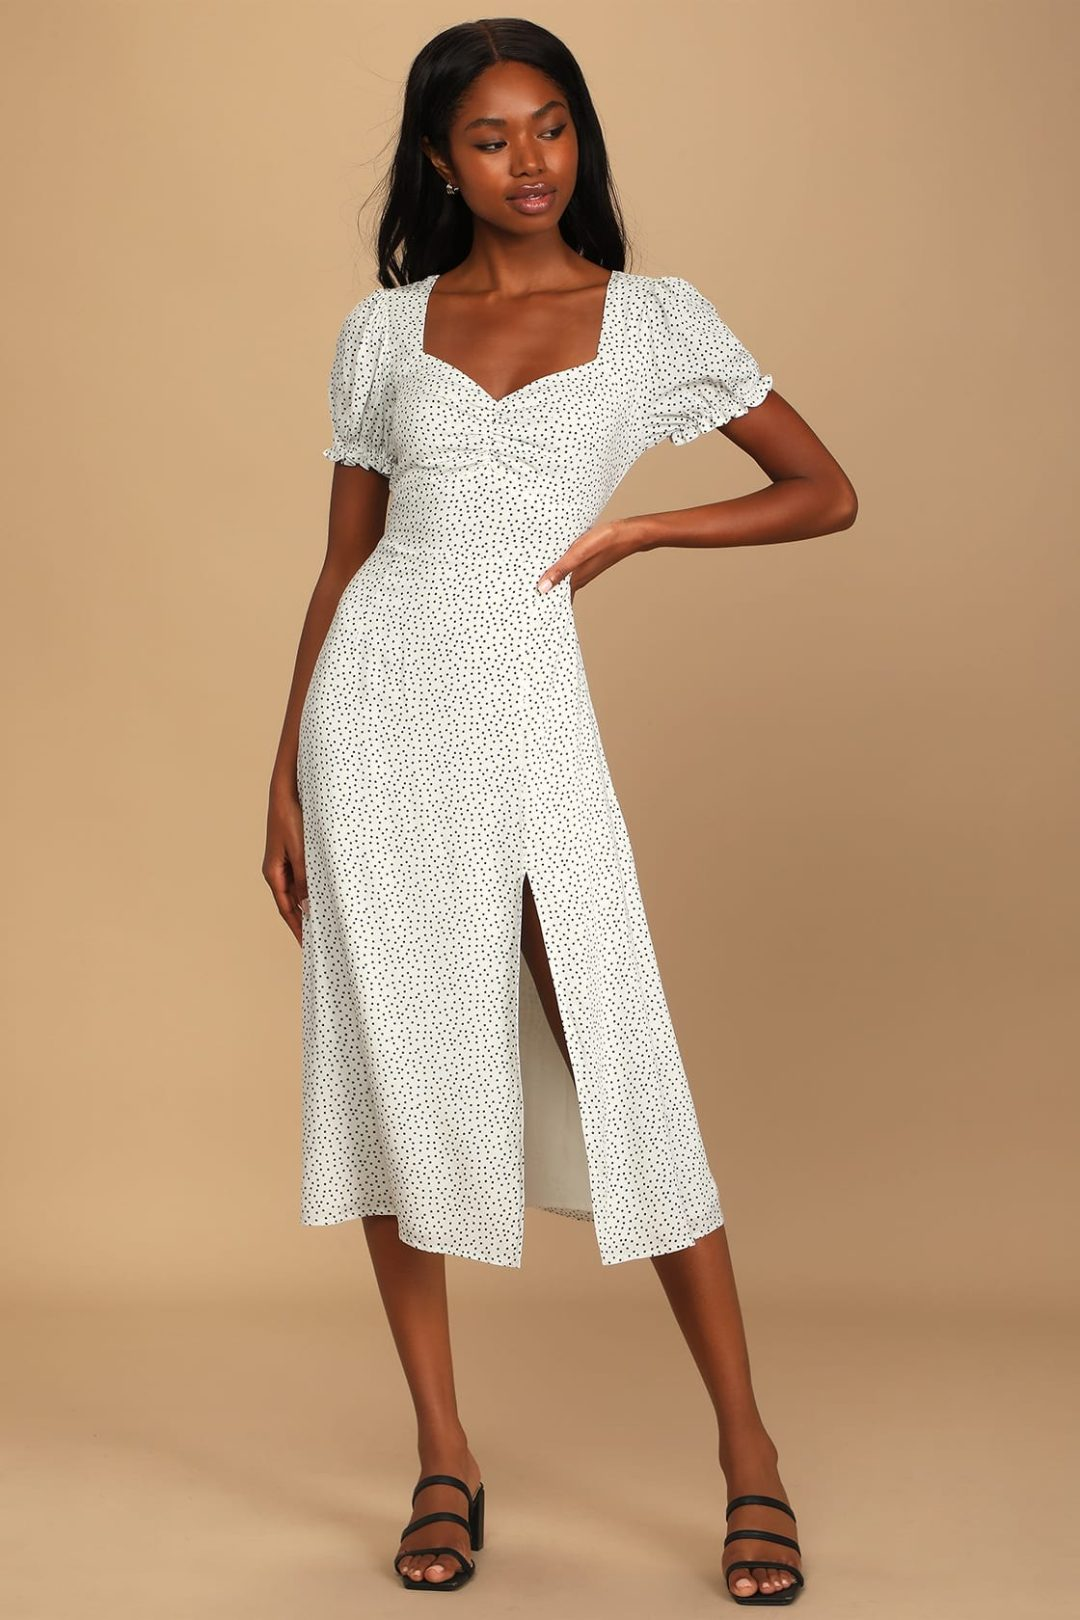 What To Wear To A Celebration Of Life: Puff sleeve midi dress